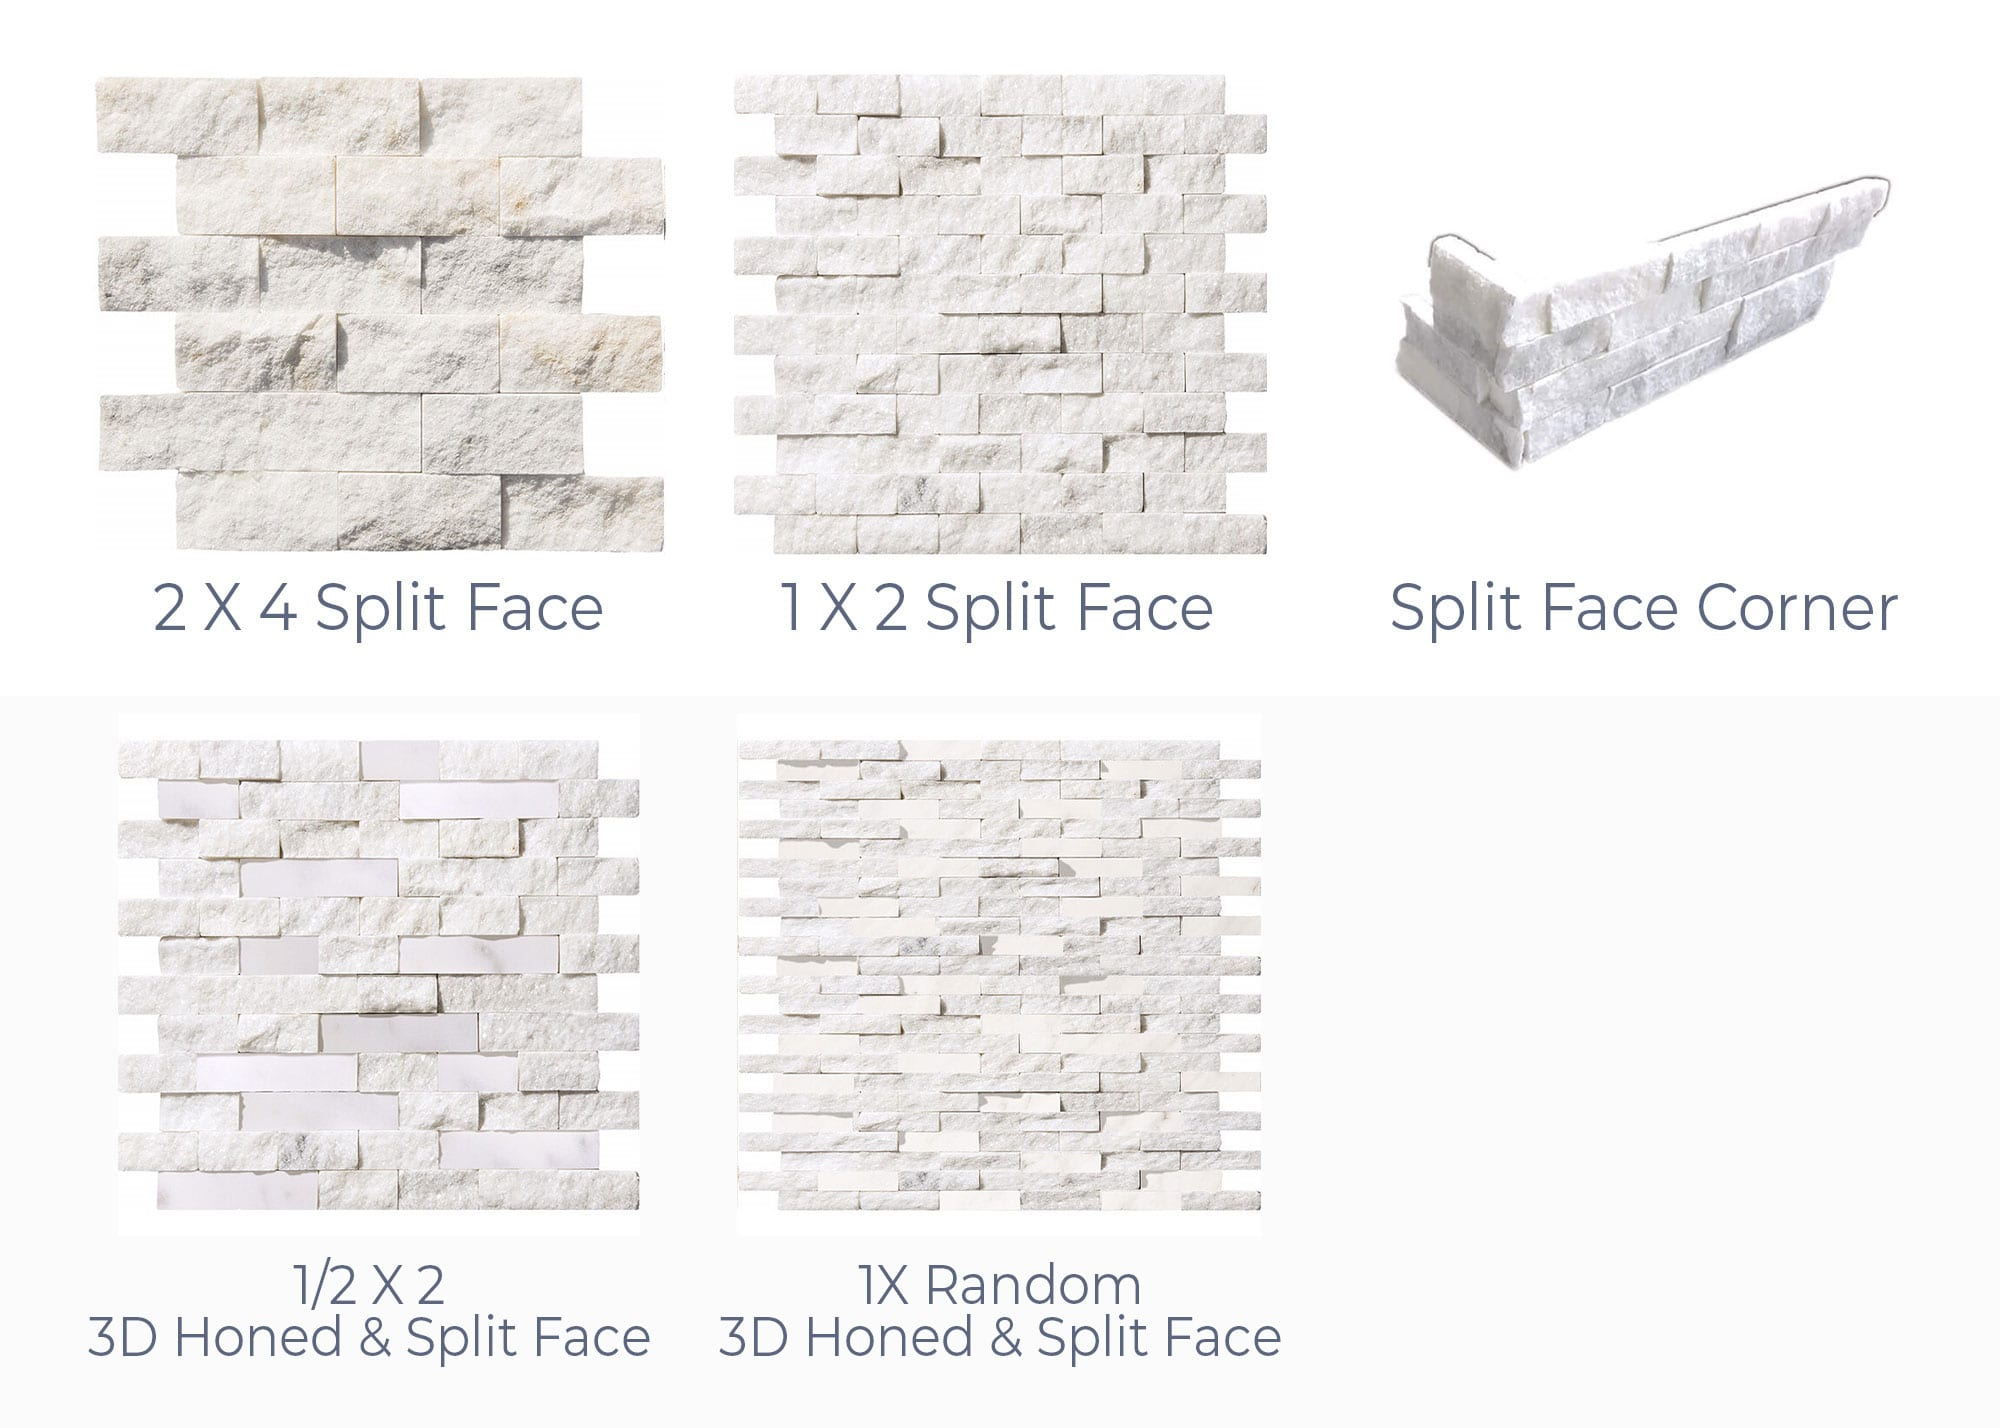 Stoneline-Group-Ice-White-Marble-Collection-Marble-Veneer-3D-Honed-Split-Face-Corner-Pictures